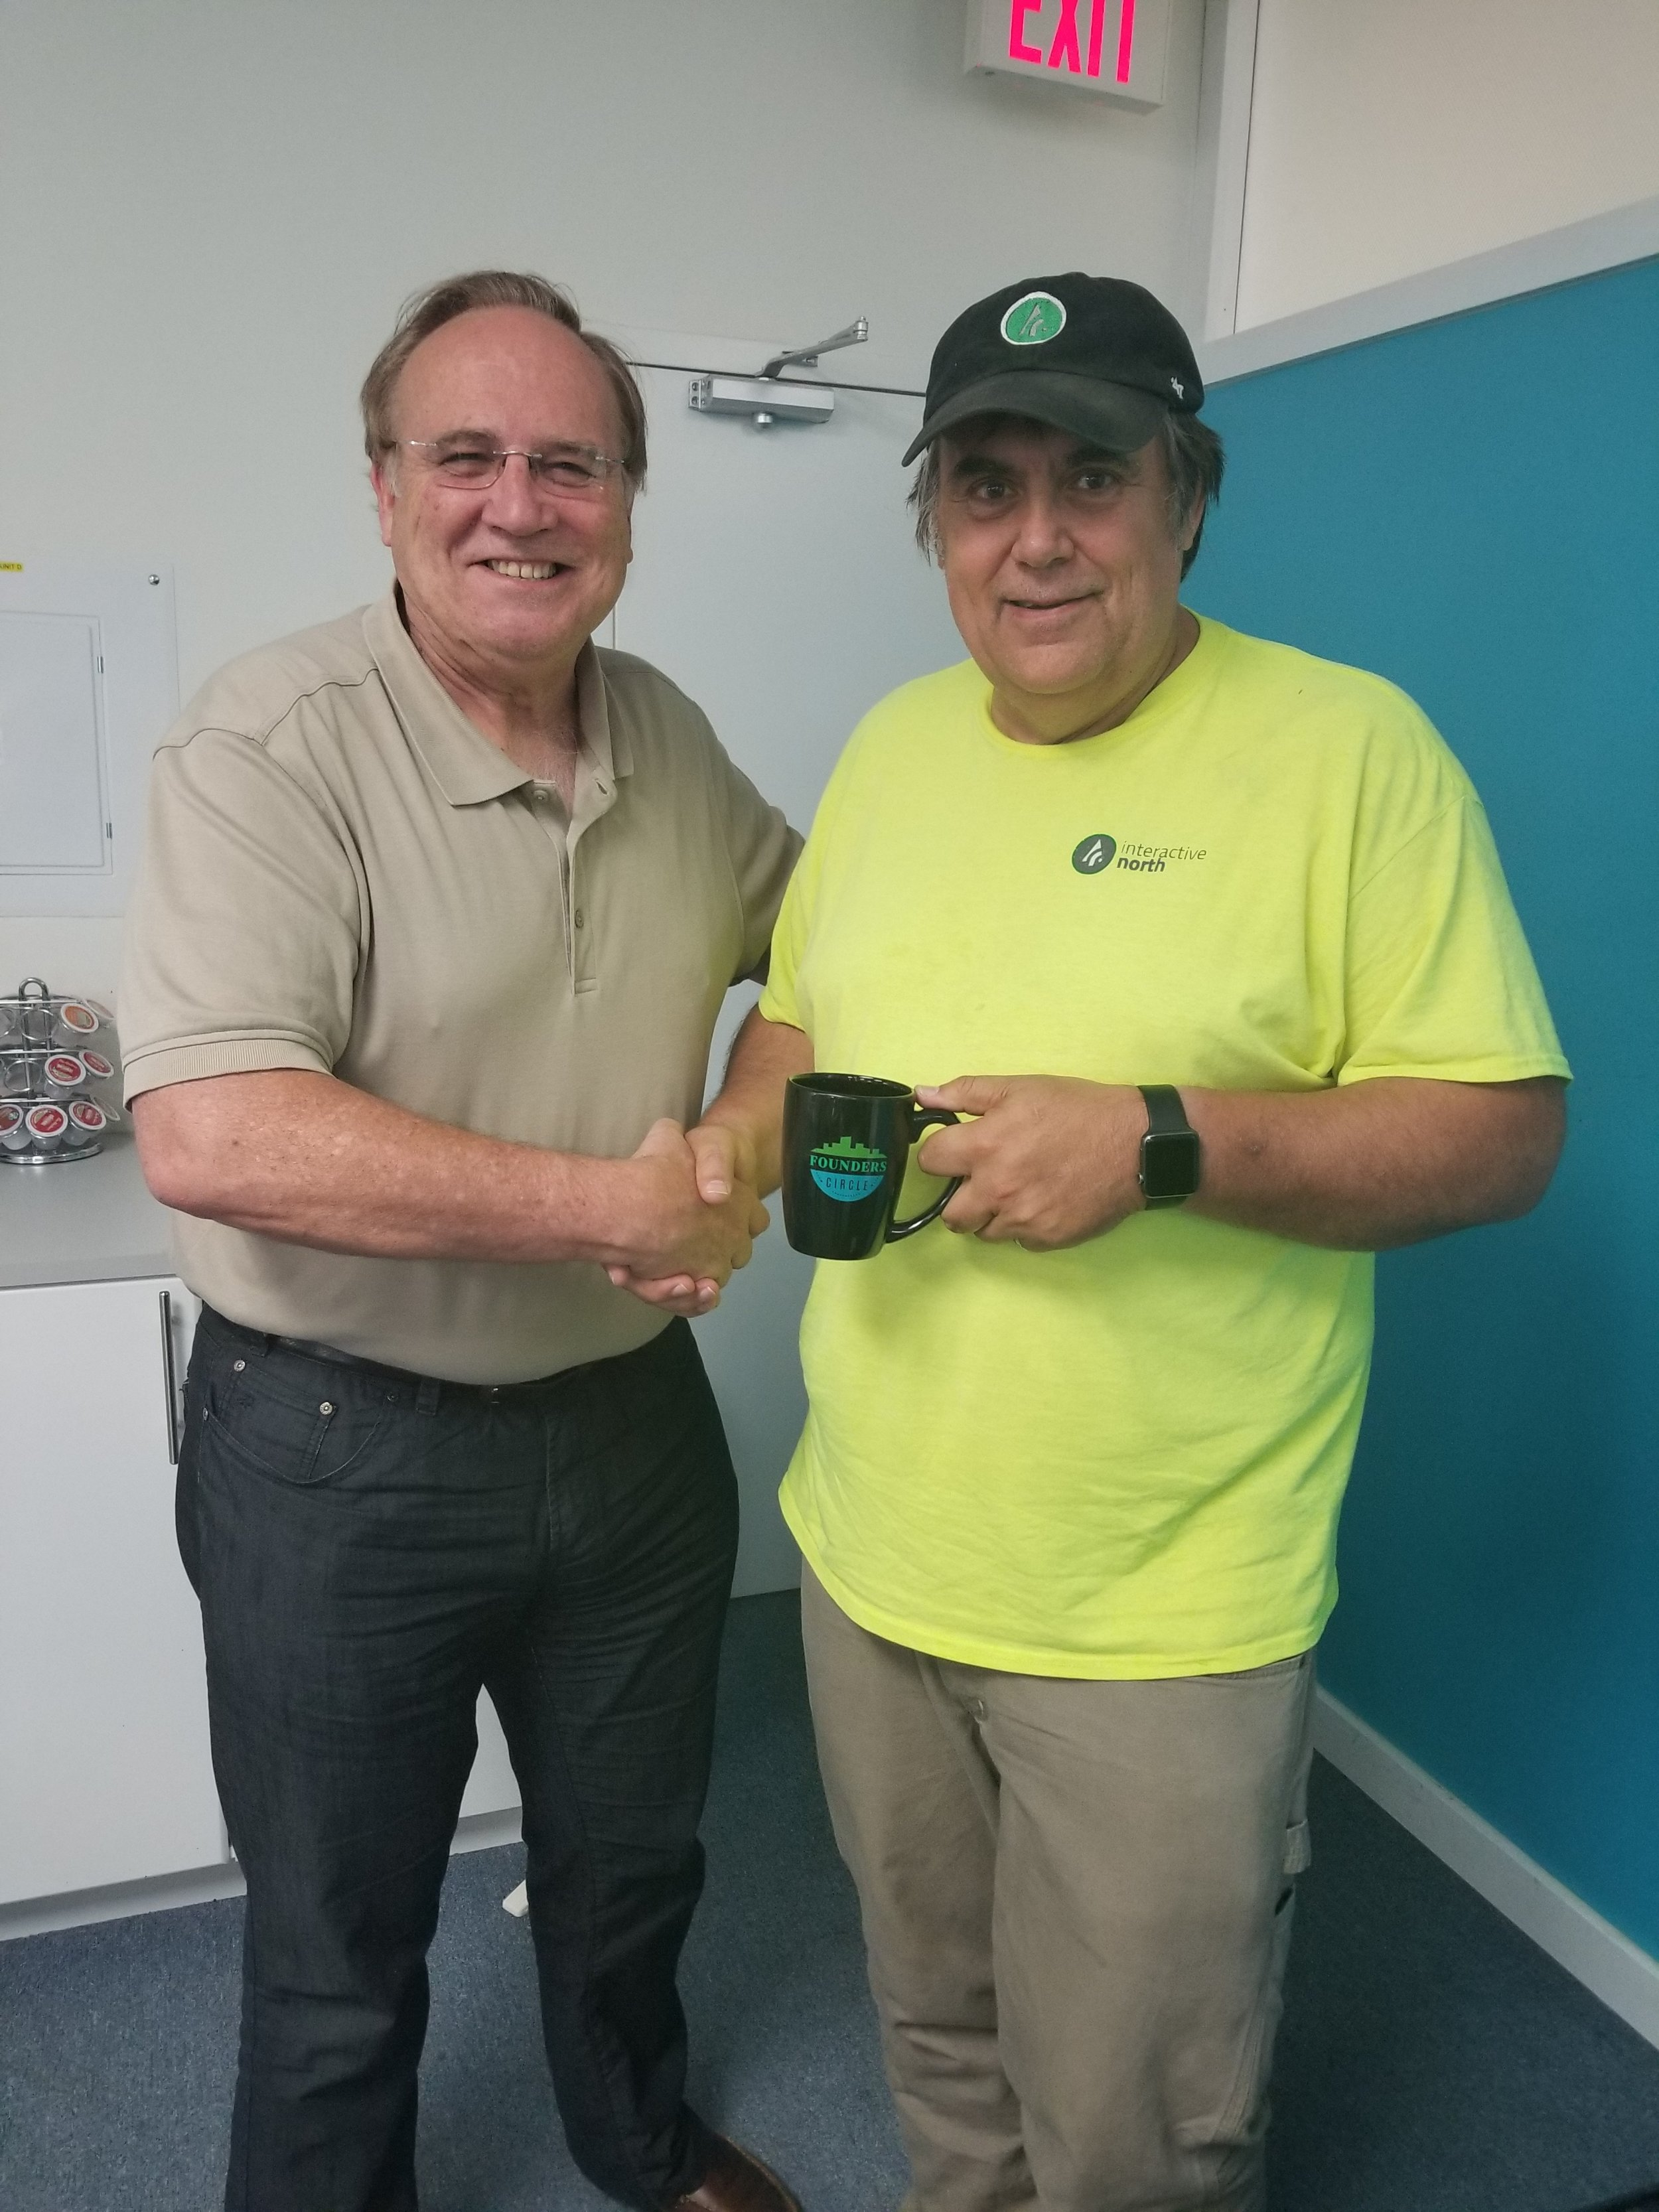 Stuart Morley presenting the Founders Circle mug to Neil Smellie